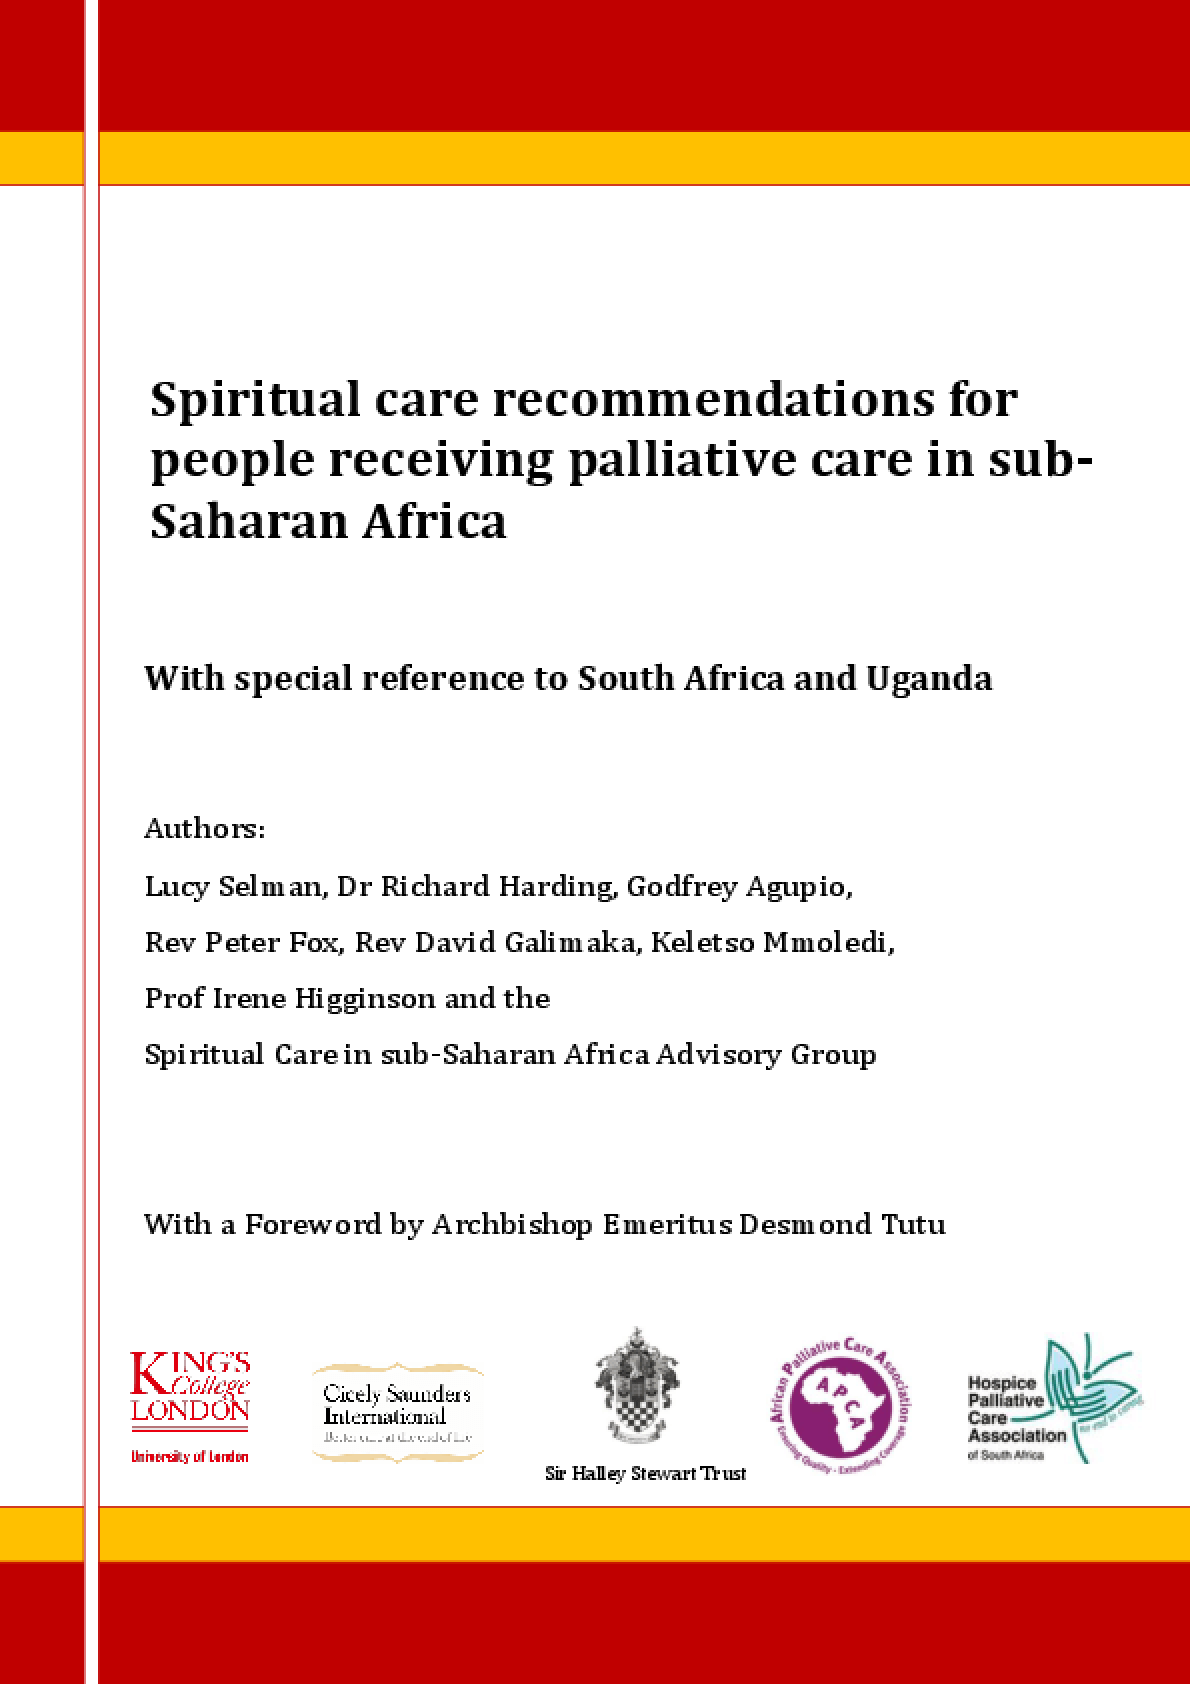 Spiritual Care Recommendations for People Receiving Palliative Care in sub-Saharan Africa